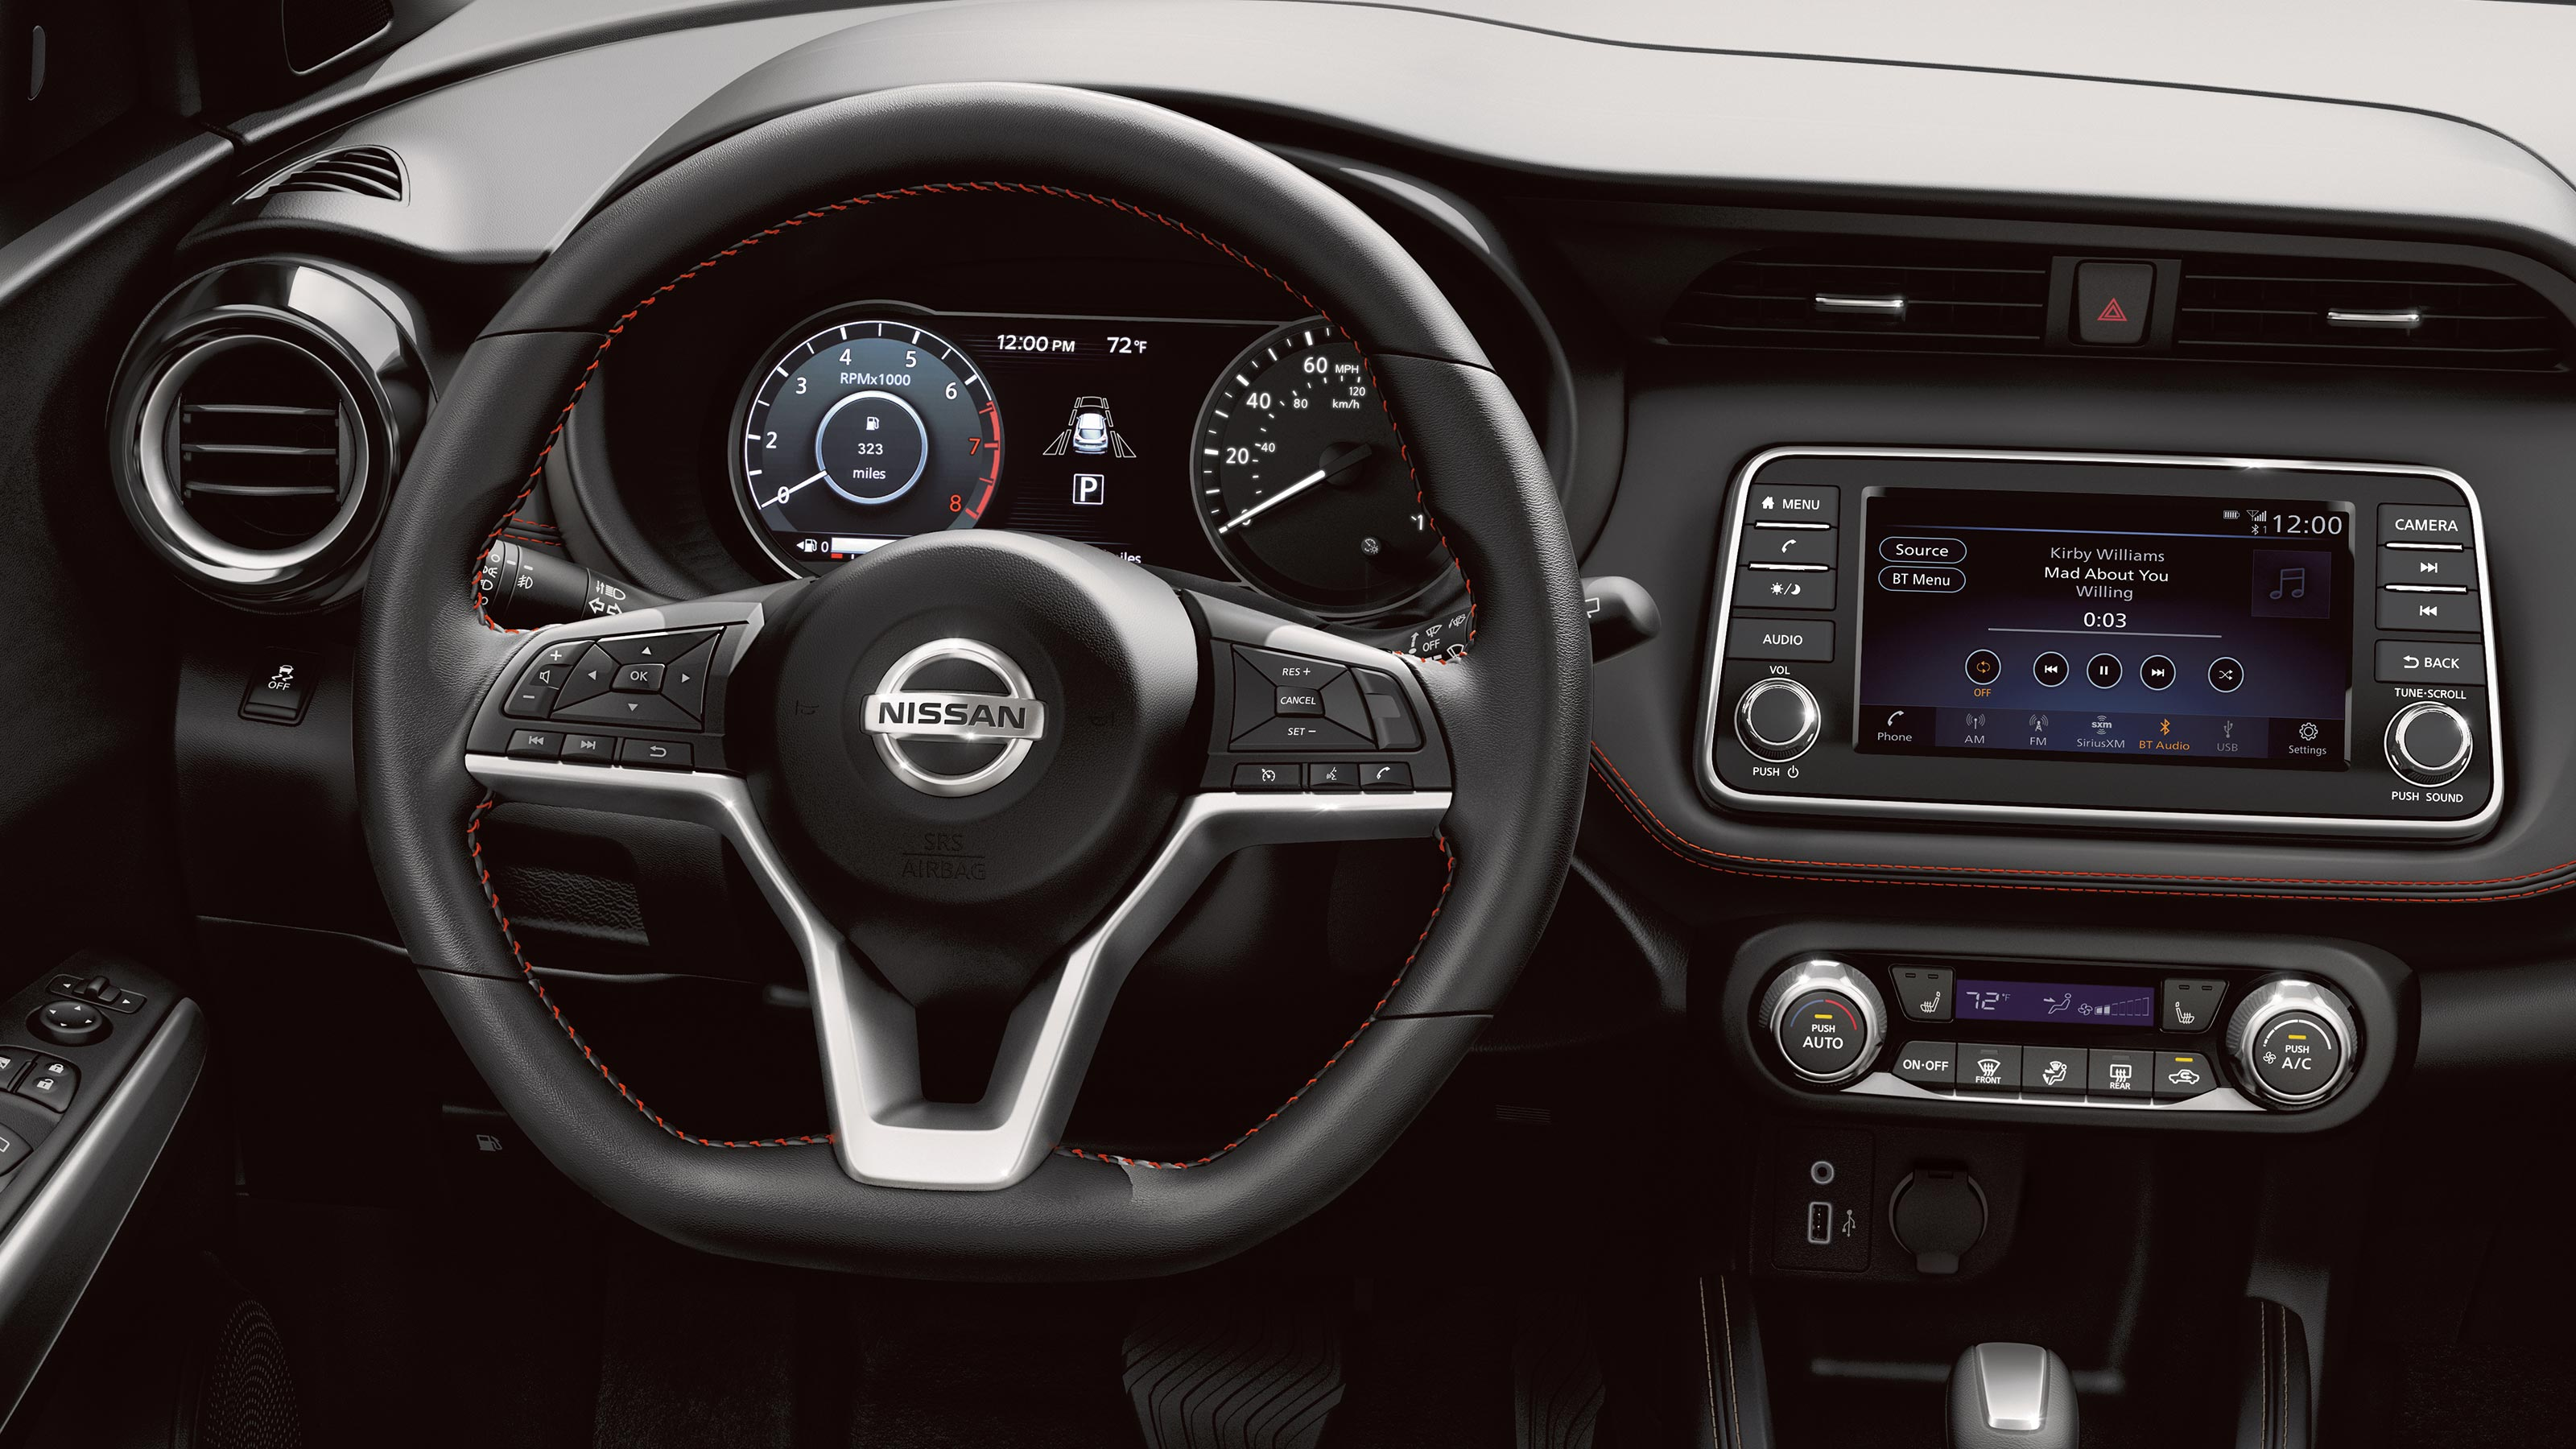 2020-kicks-cockpit-steering-wheel-20tdipace210-d.jpg